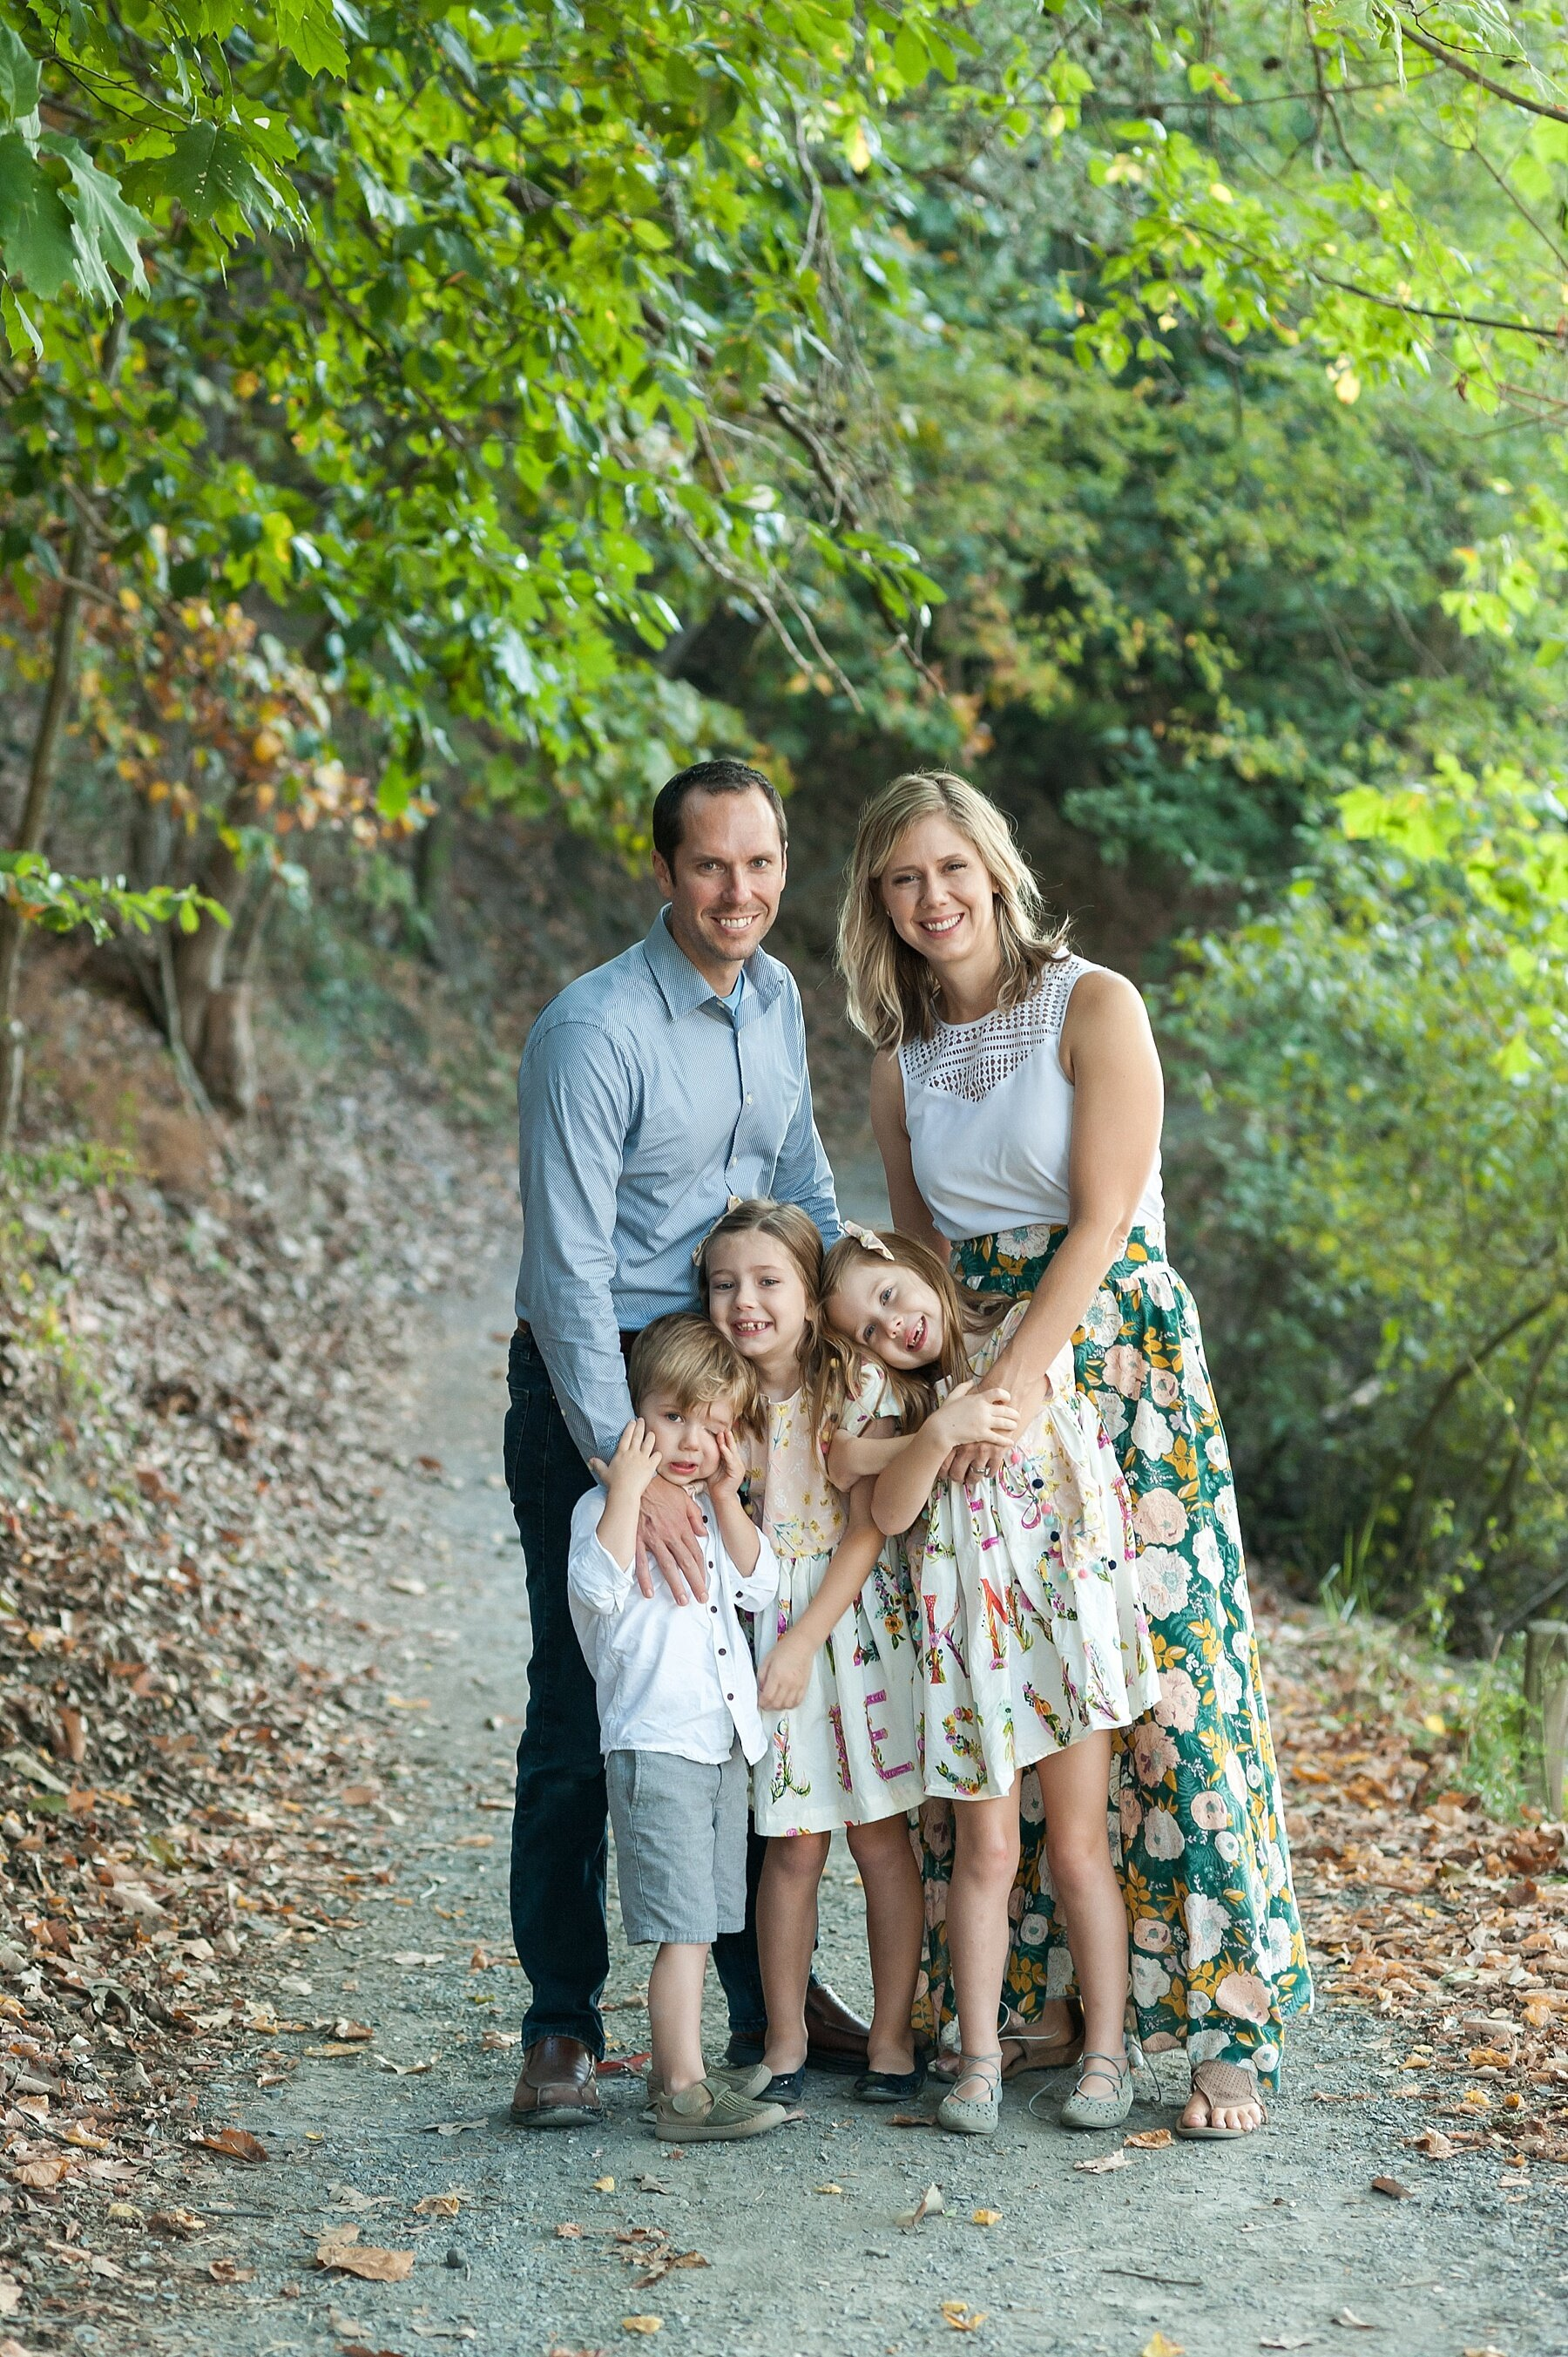 Wendy Zook Photography | Frederick MD family photographer, Lake Linganore Photography, Lake Linganore family photos, Maryland family photographer, MD family photos, Lake Linganore family session